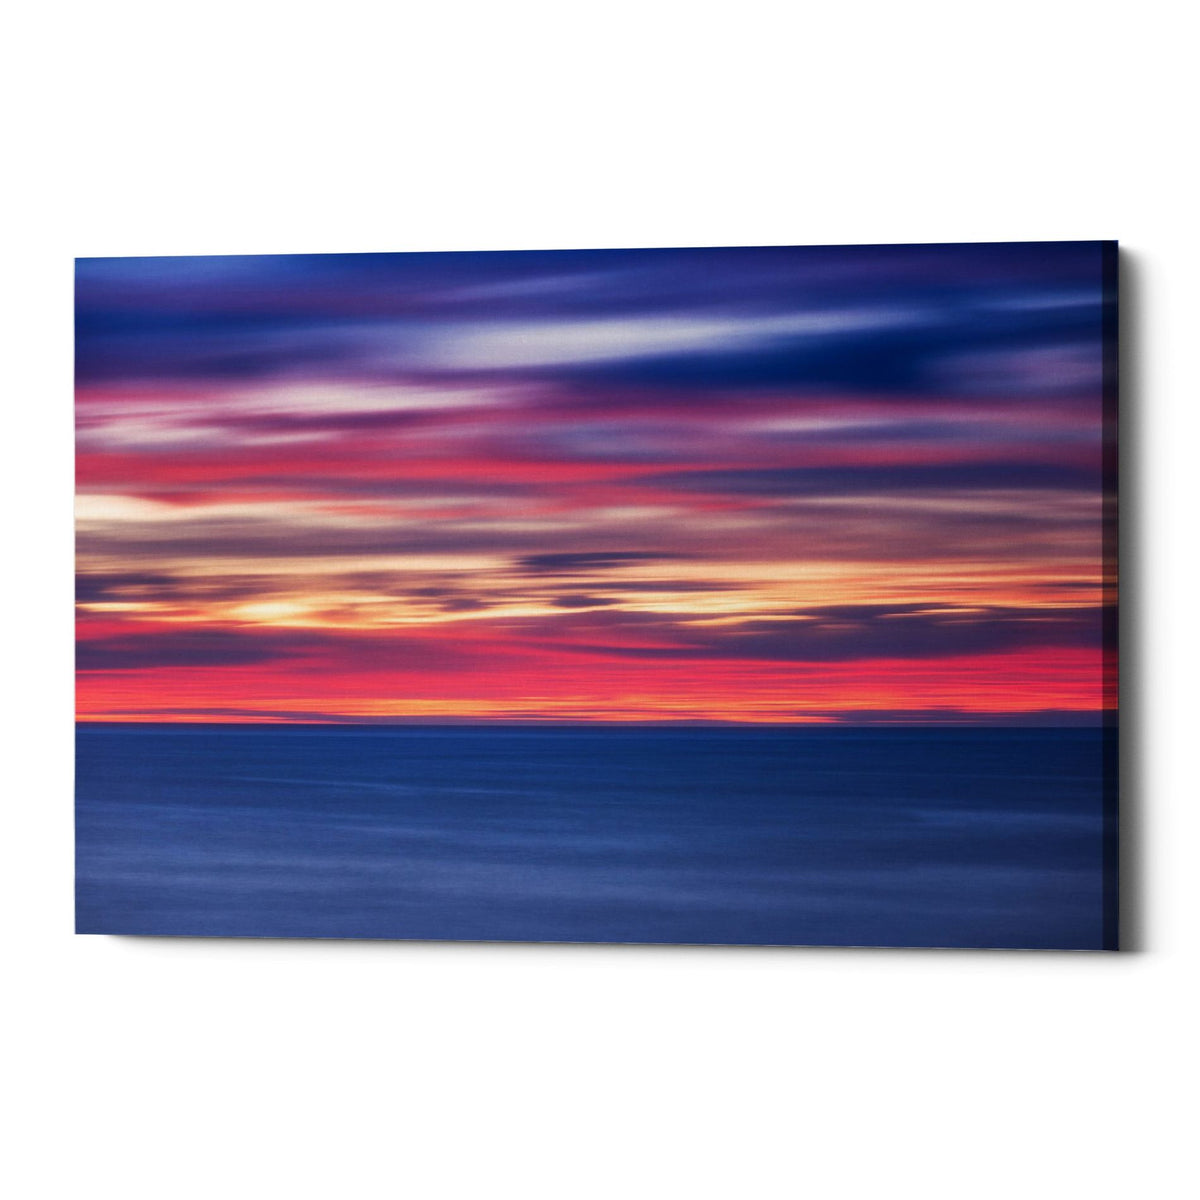 "Epic Graffiti ""One Minute Sunrise"" by Darren White, Giclee Canvas Wall Art"